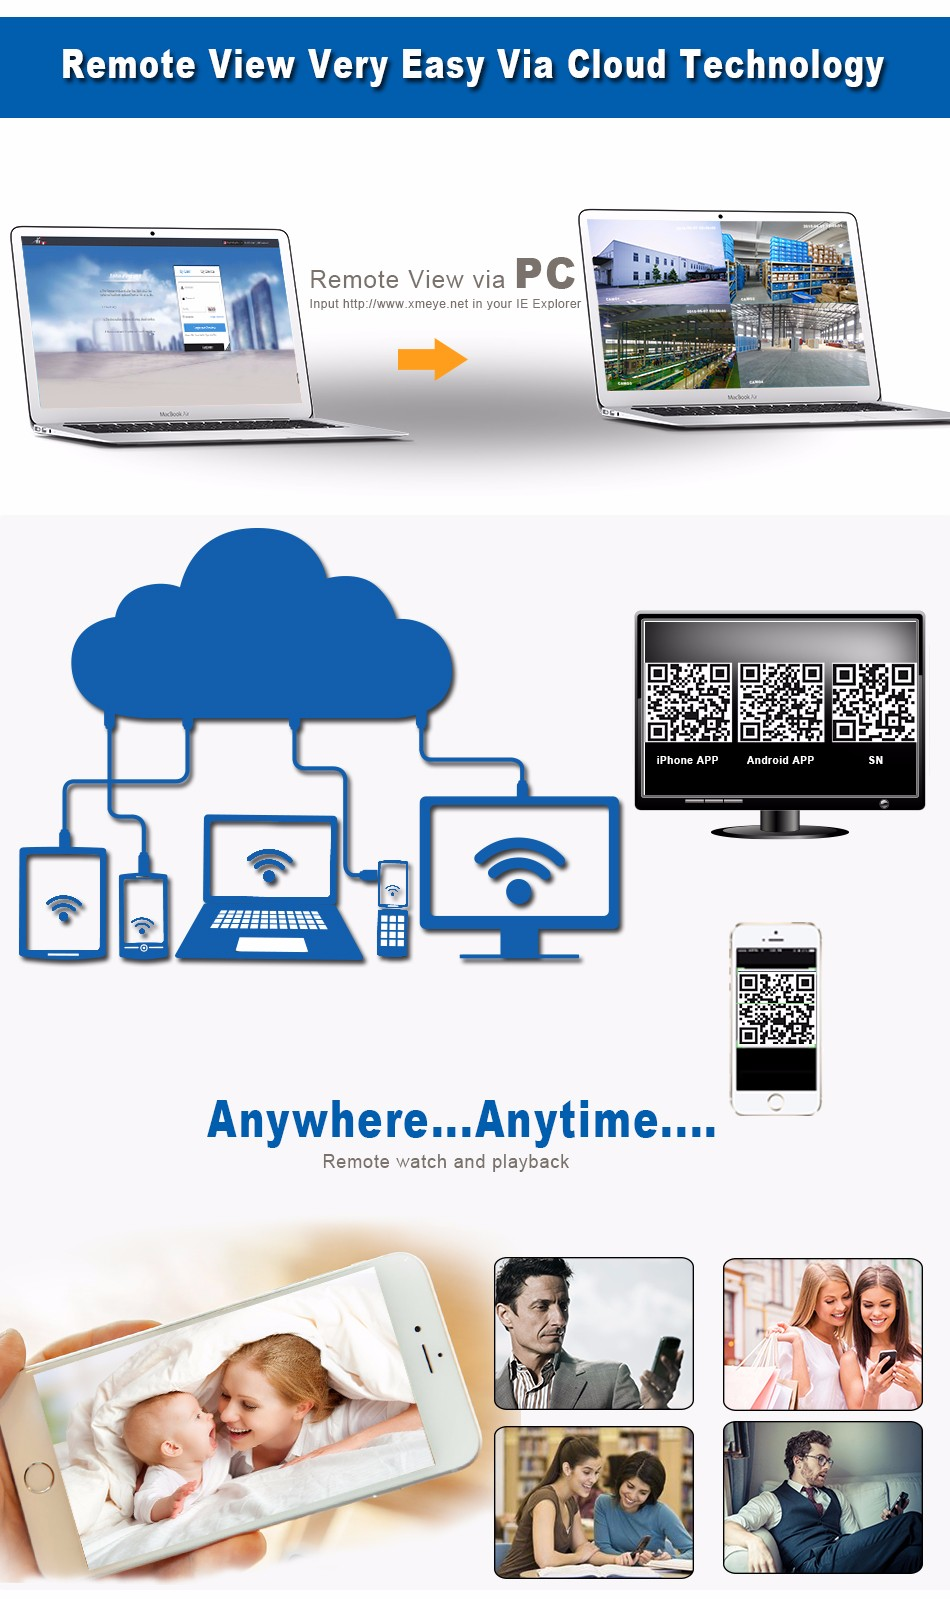 2-Remote View Very Easy Via Cloud Technology